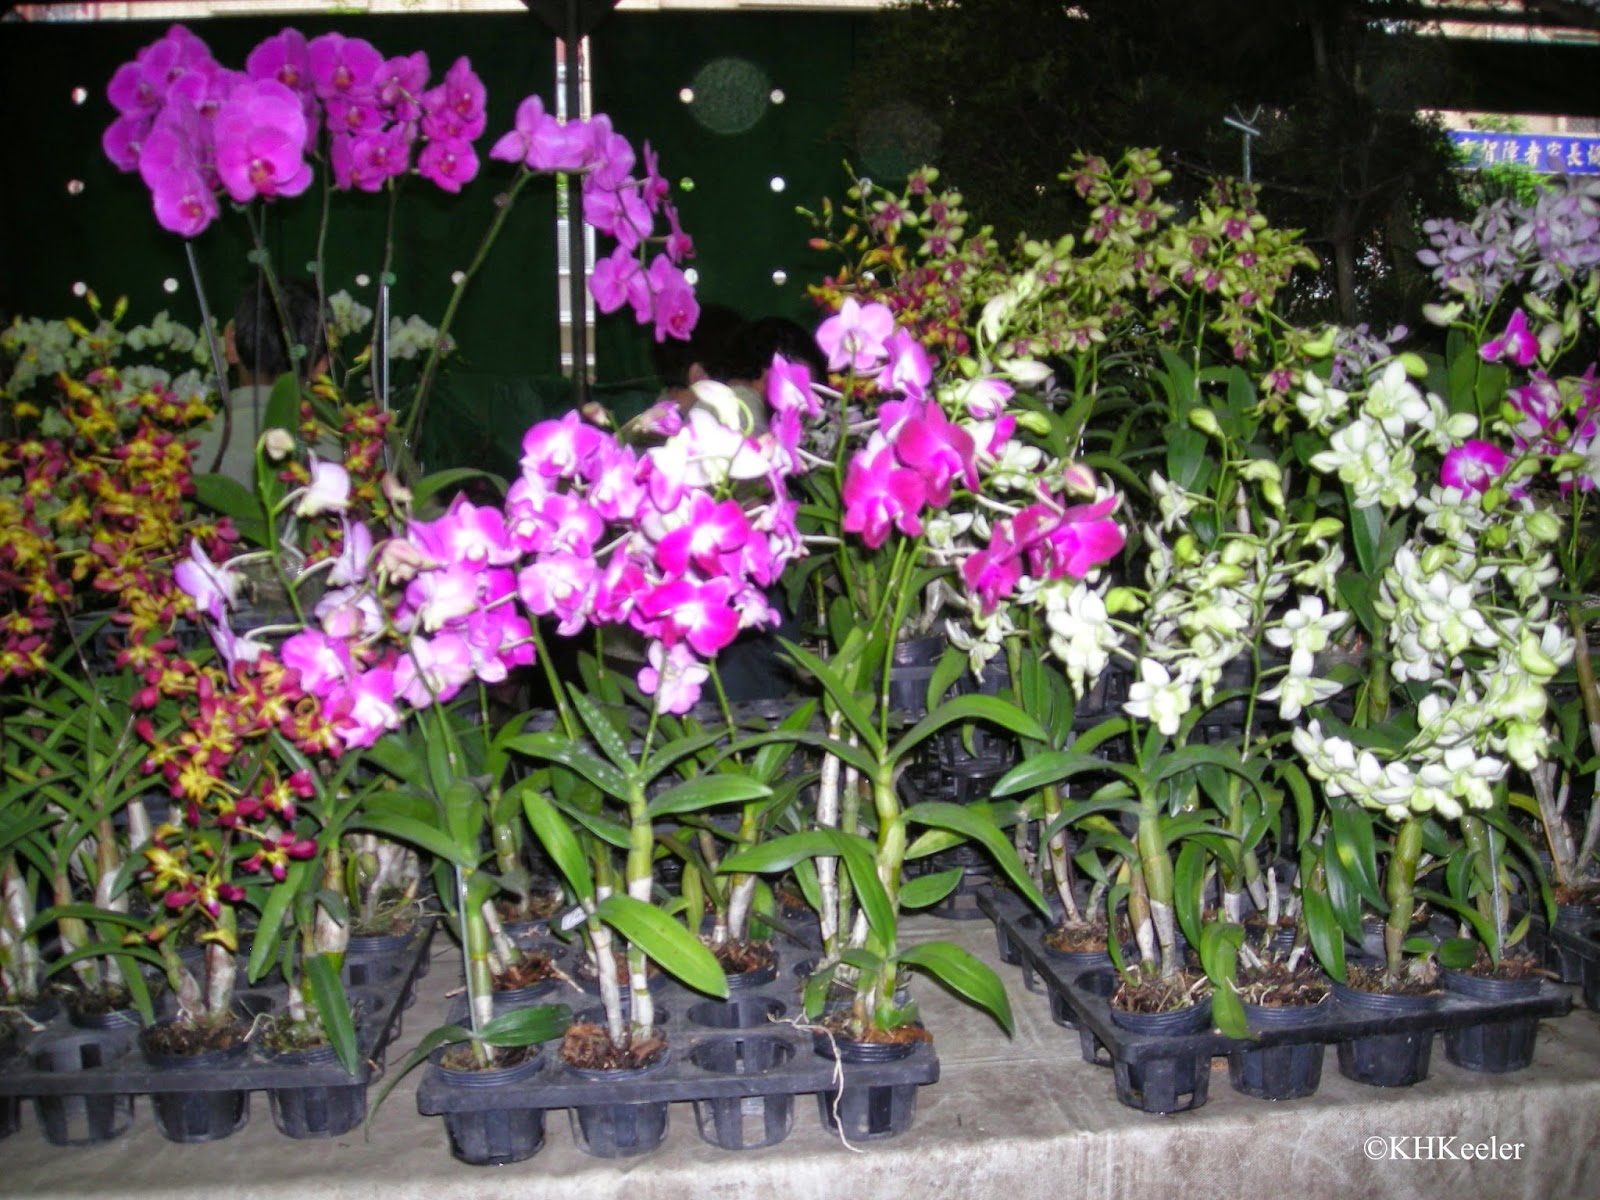 orchids for sale, Taiwan